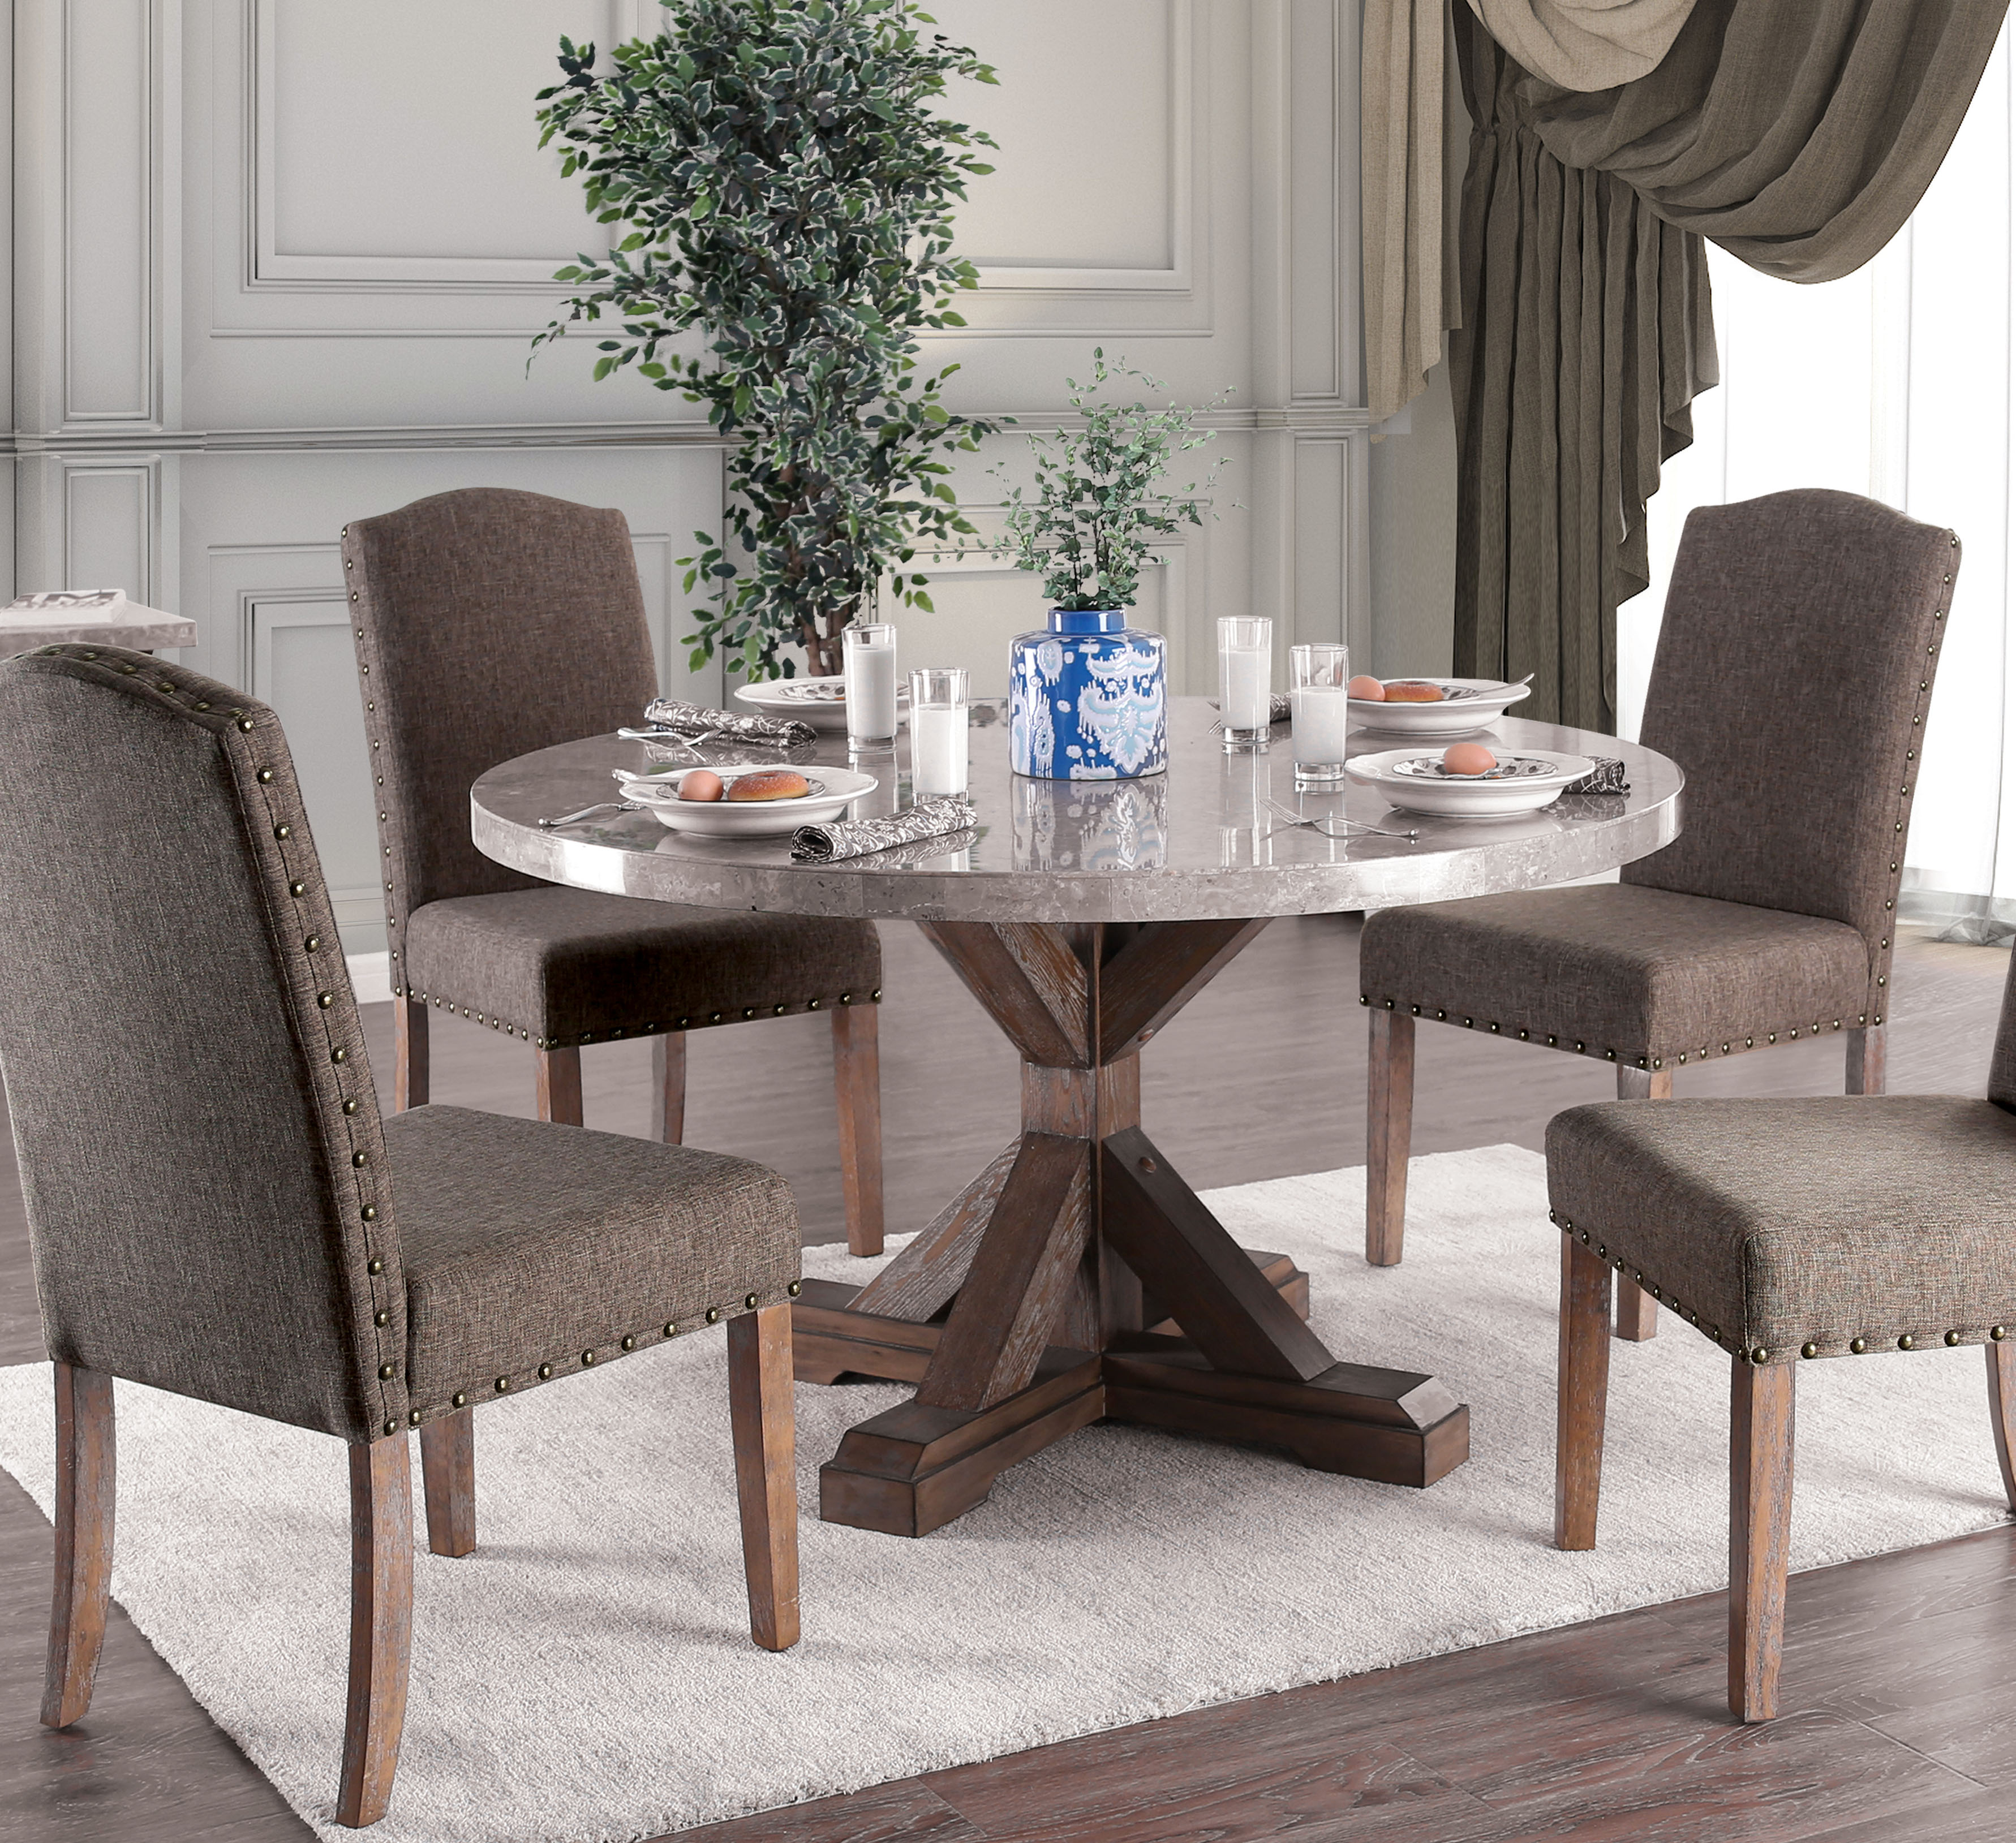 Utah Furniture Deals